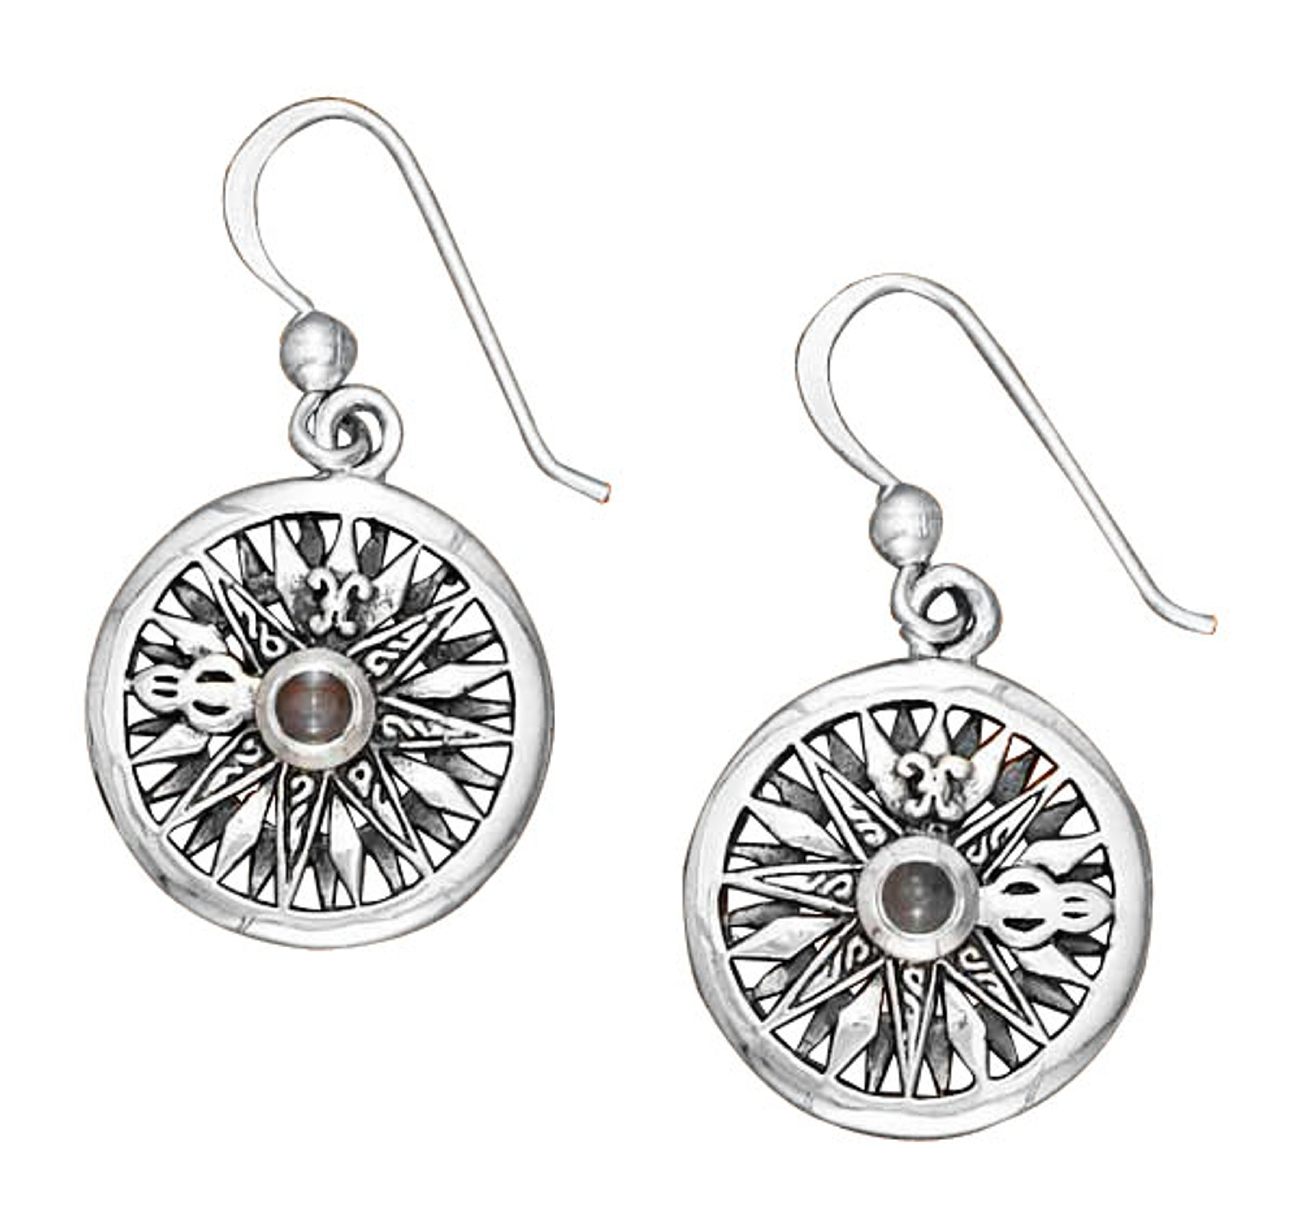 Compass Rose Blue Topaz Gemstone Earrings